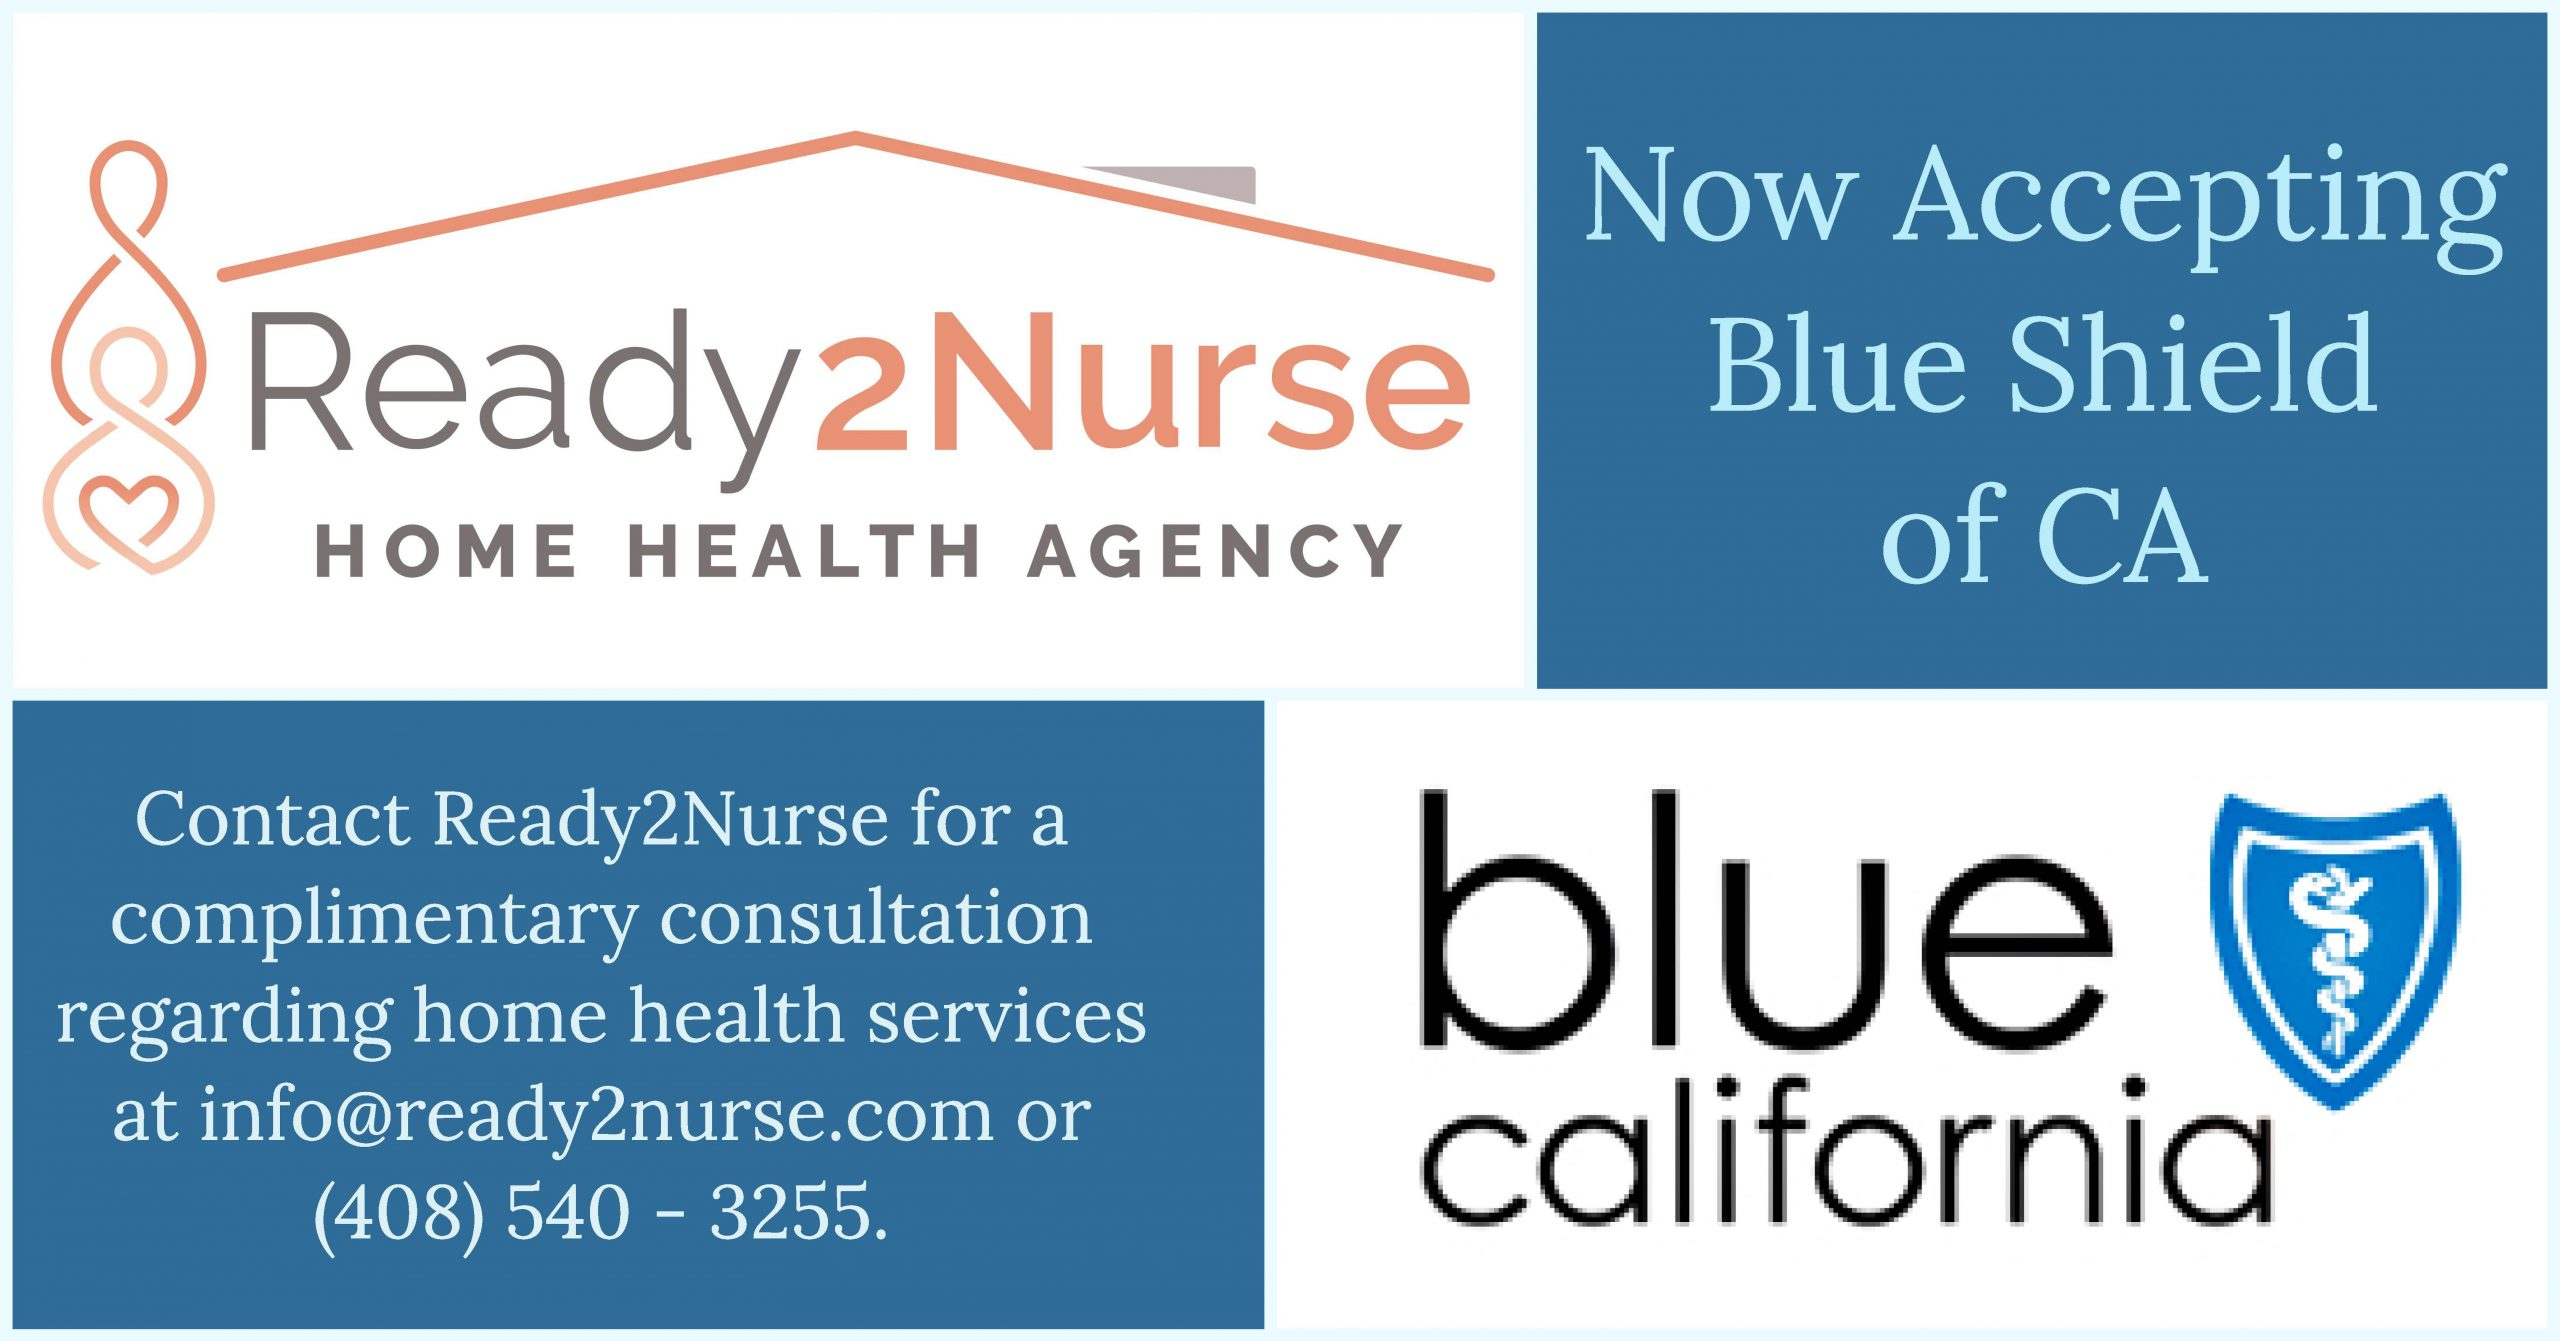 Now Accepting Blue Shield of California